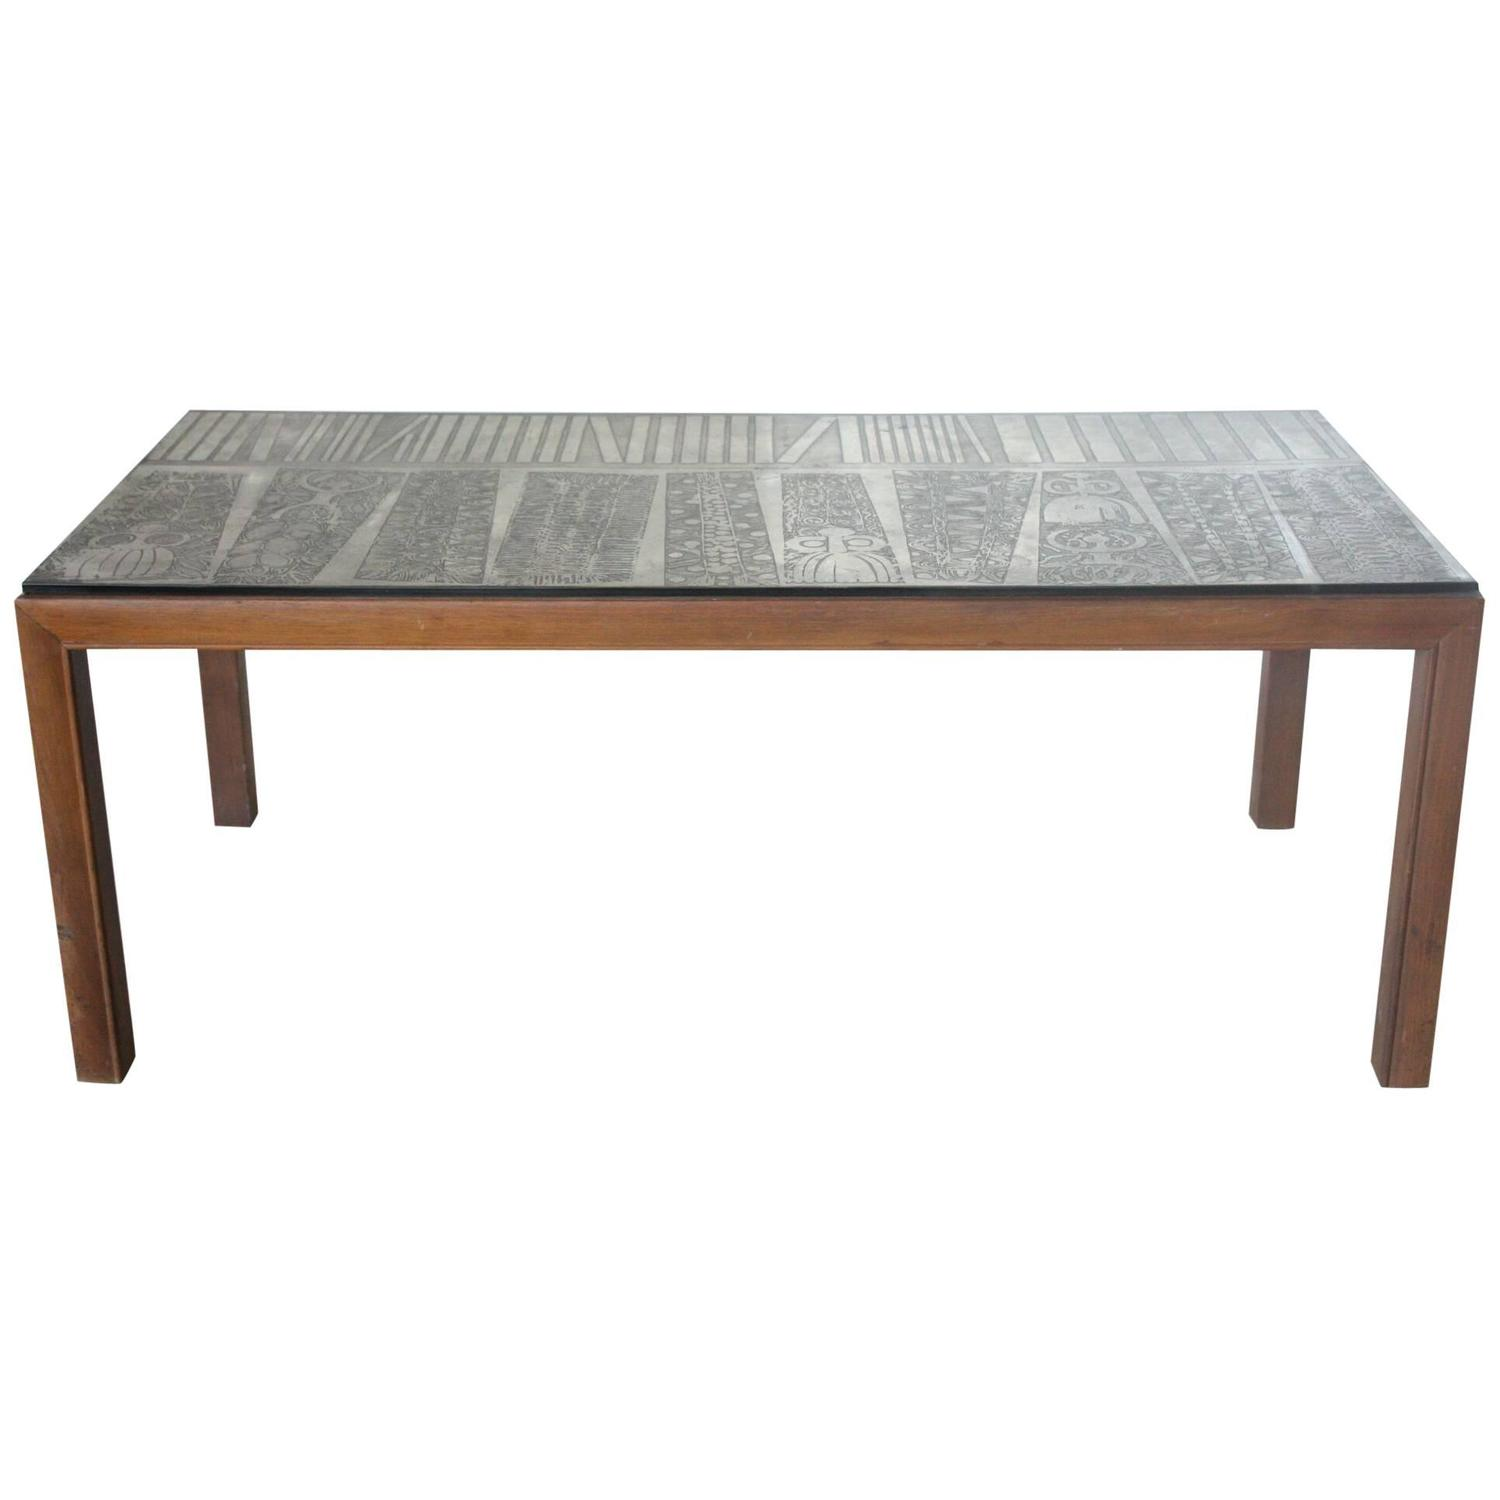 Italian Etched Metal Top Coffee Table At 1stdibs